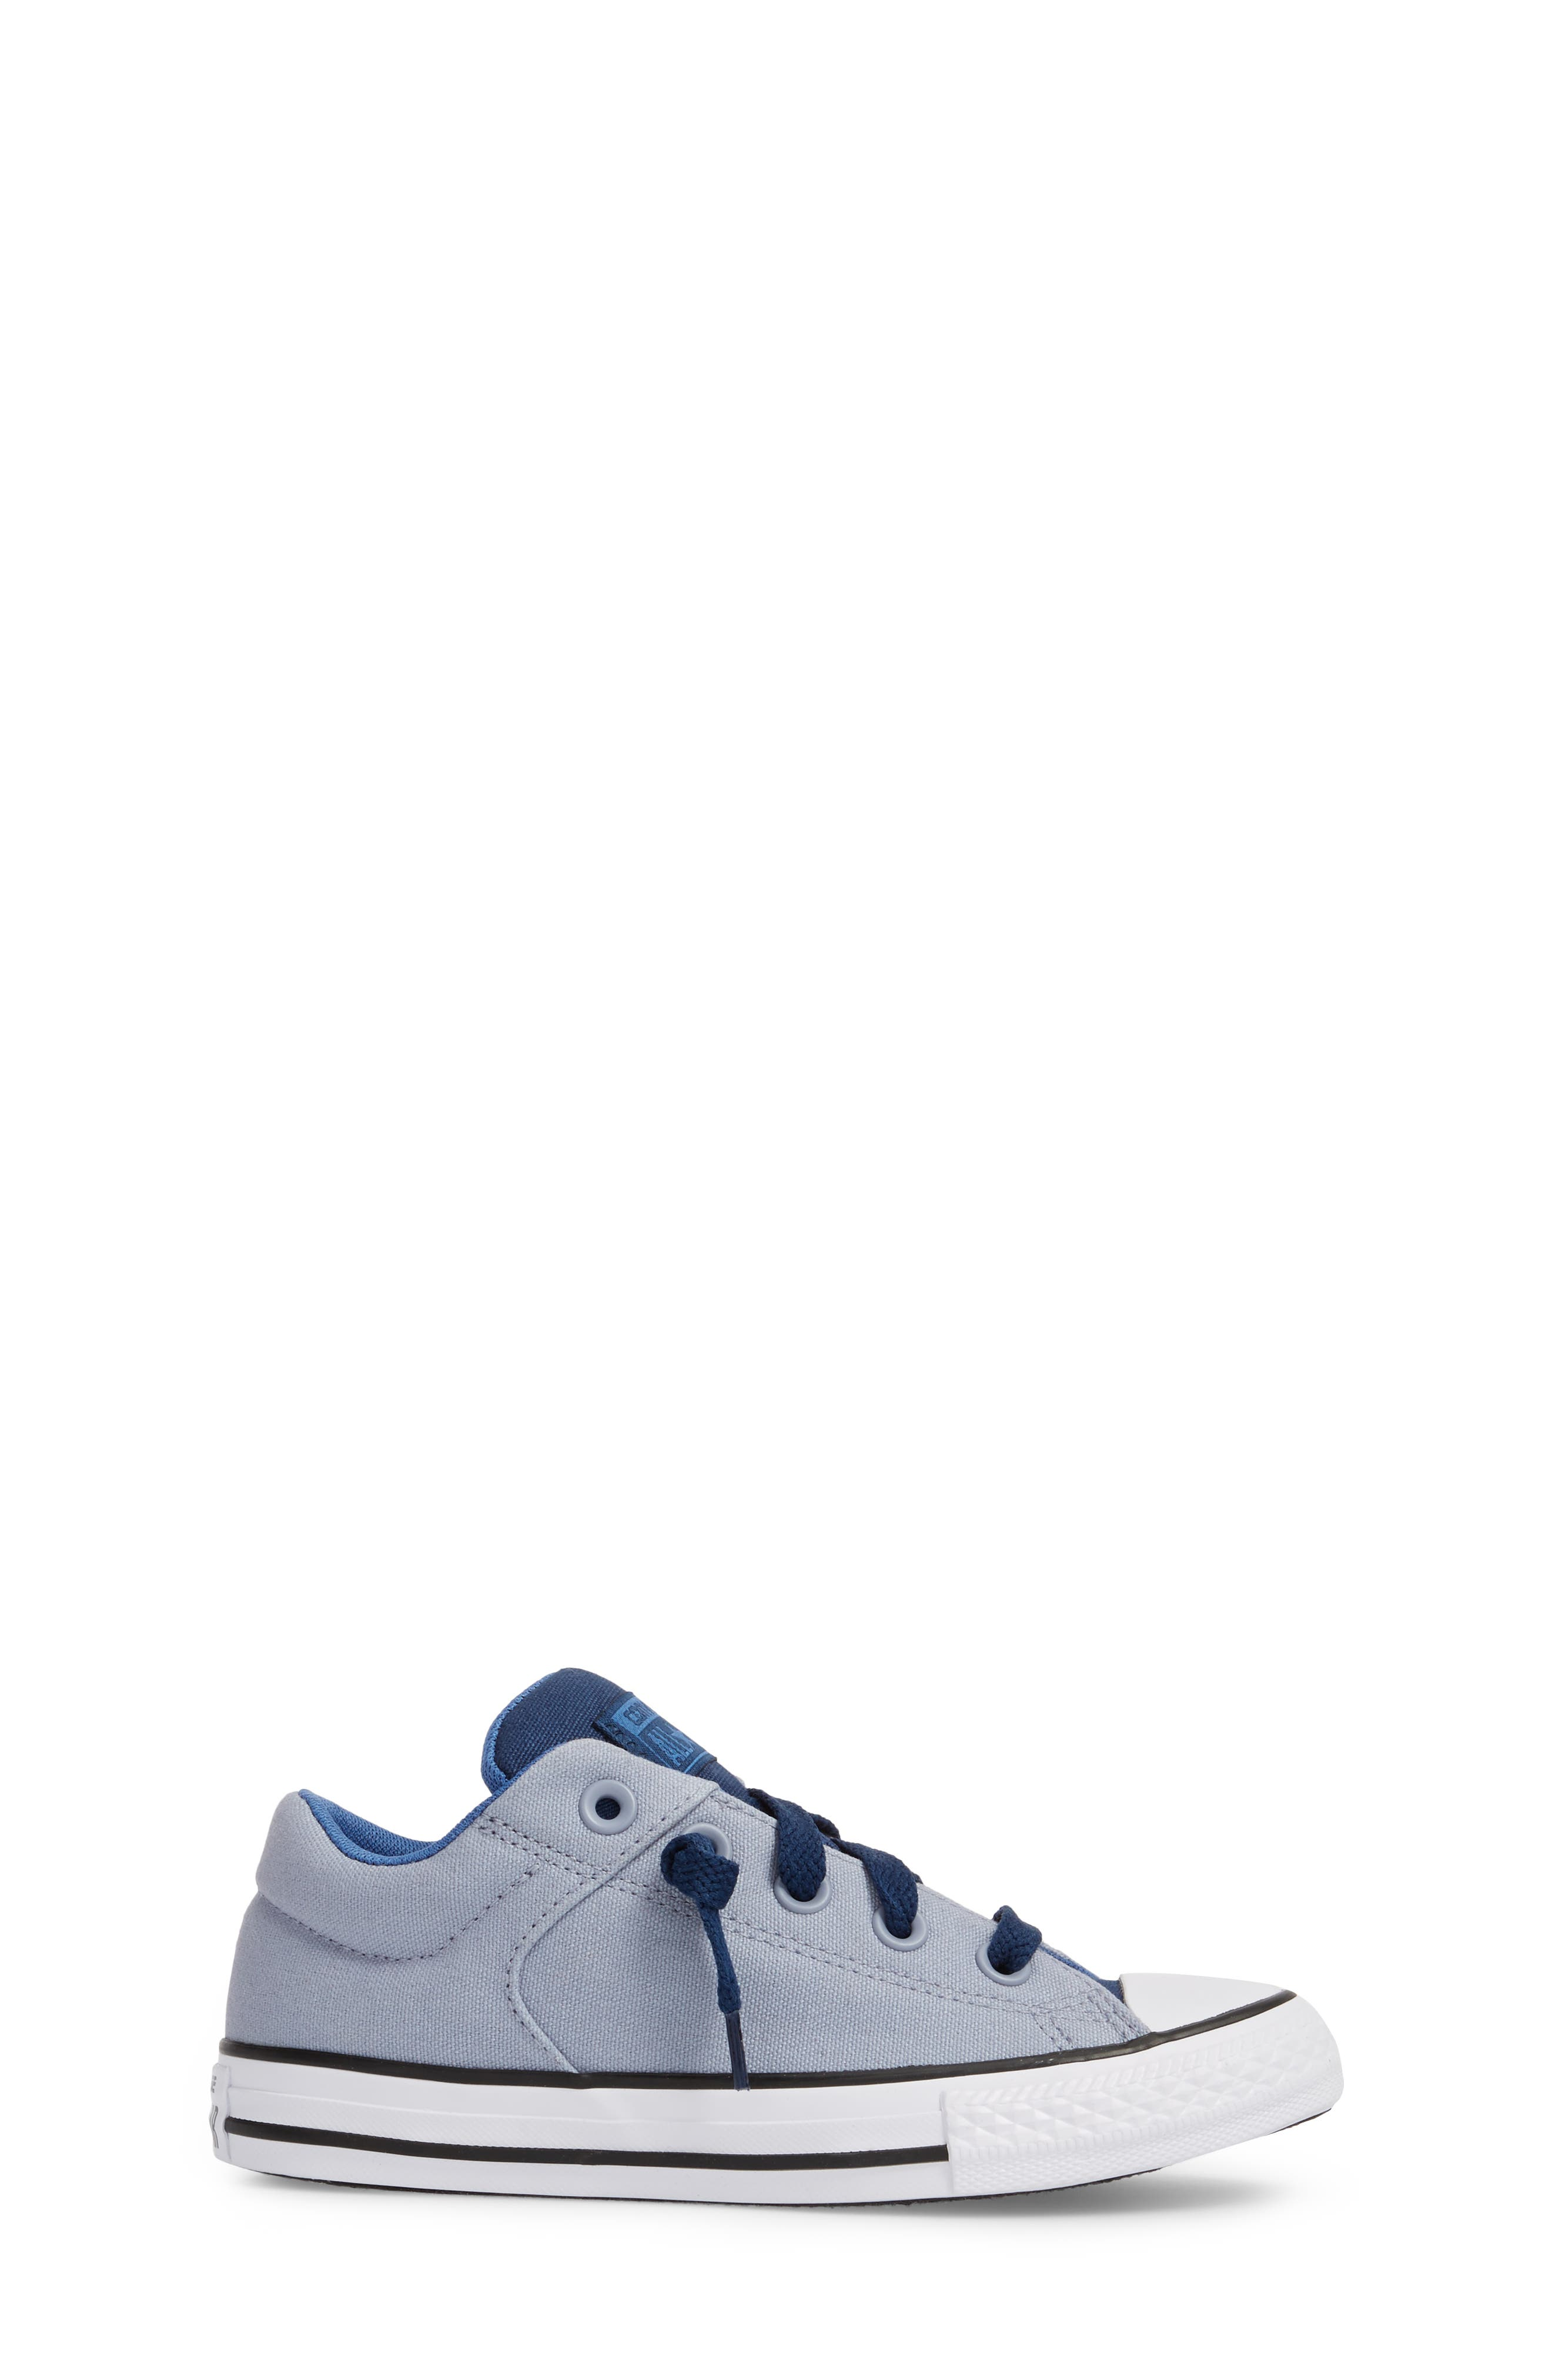 Chuck Taylor<sup>®</sup> All Star<sup>®</sup> 'High Street' Slip-On Sneaker,                             Alternate thumbnail 3, color,                             Glacier Grey